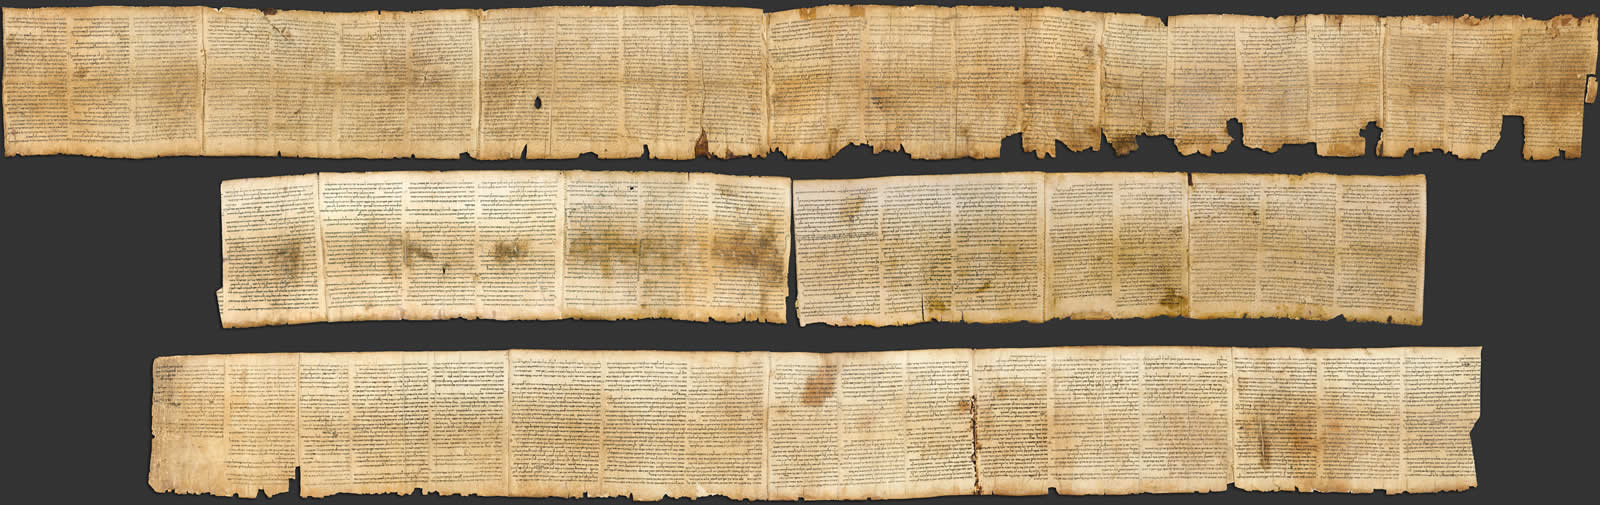 great-isaiah-scroll-dead-sea-scrolls.jpg